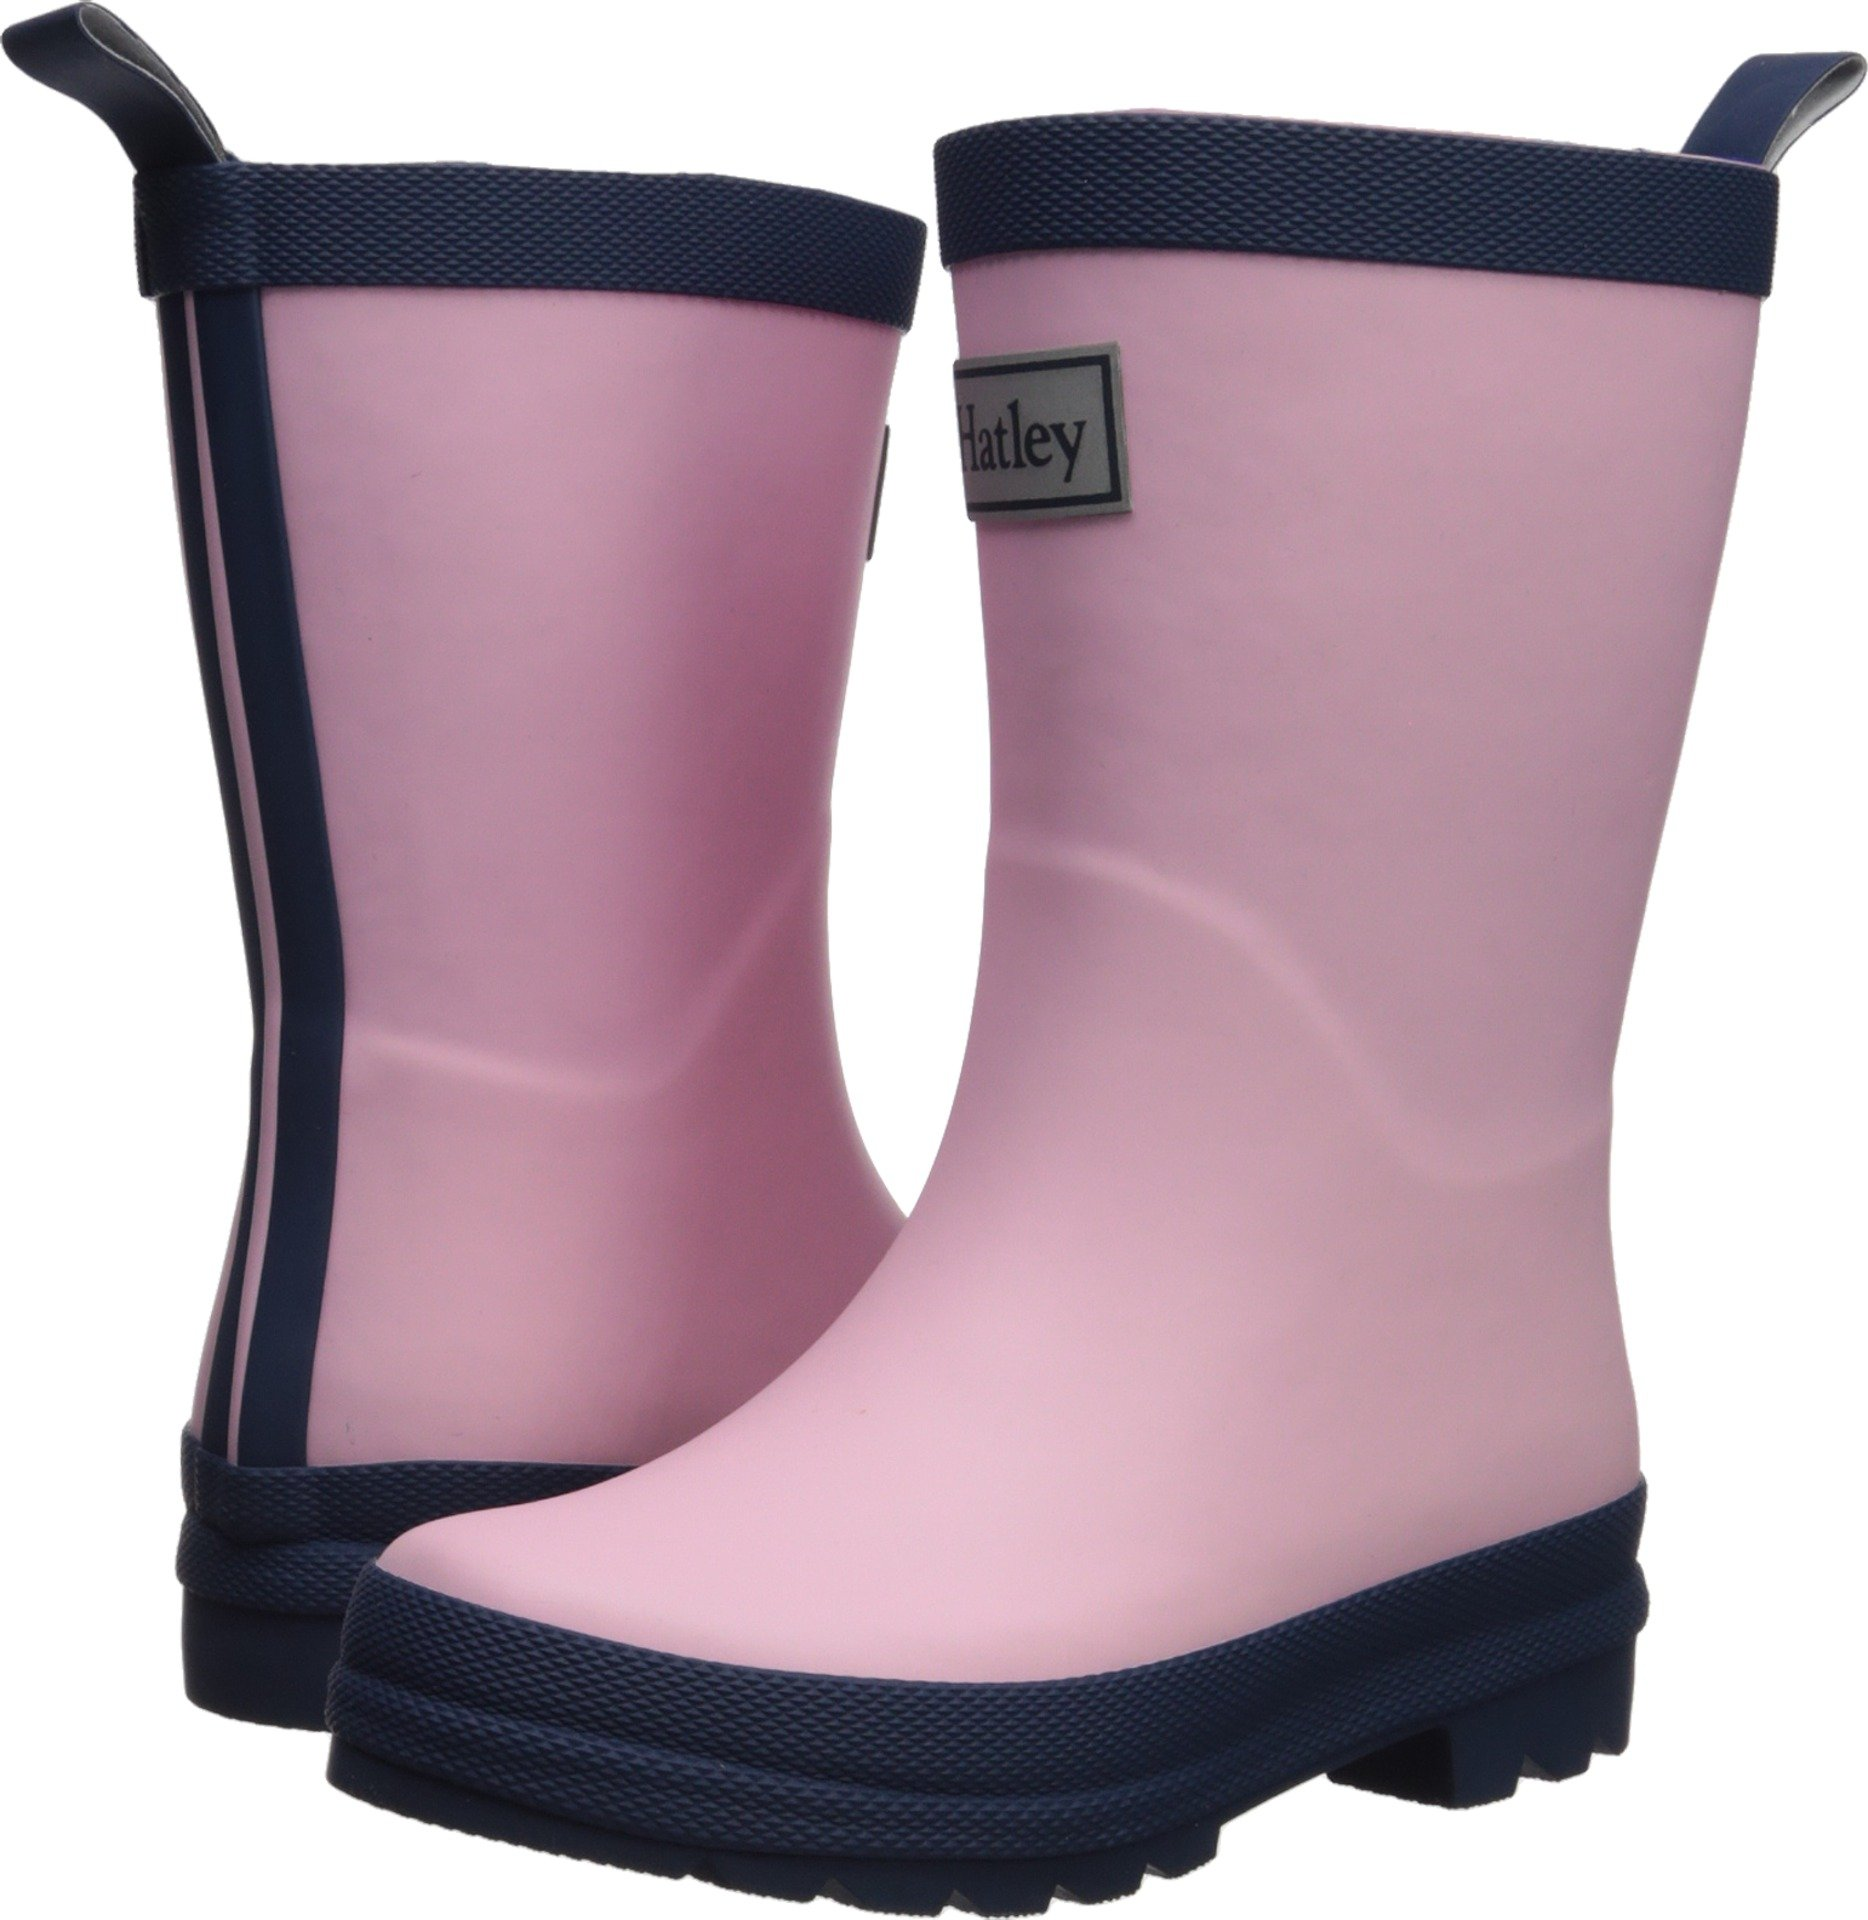 Hatley Classic Rain Boots, Pink and Navy, 10 M US Little Kid